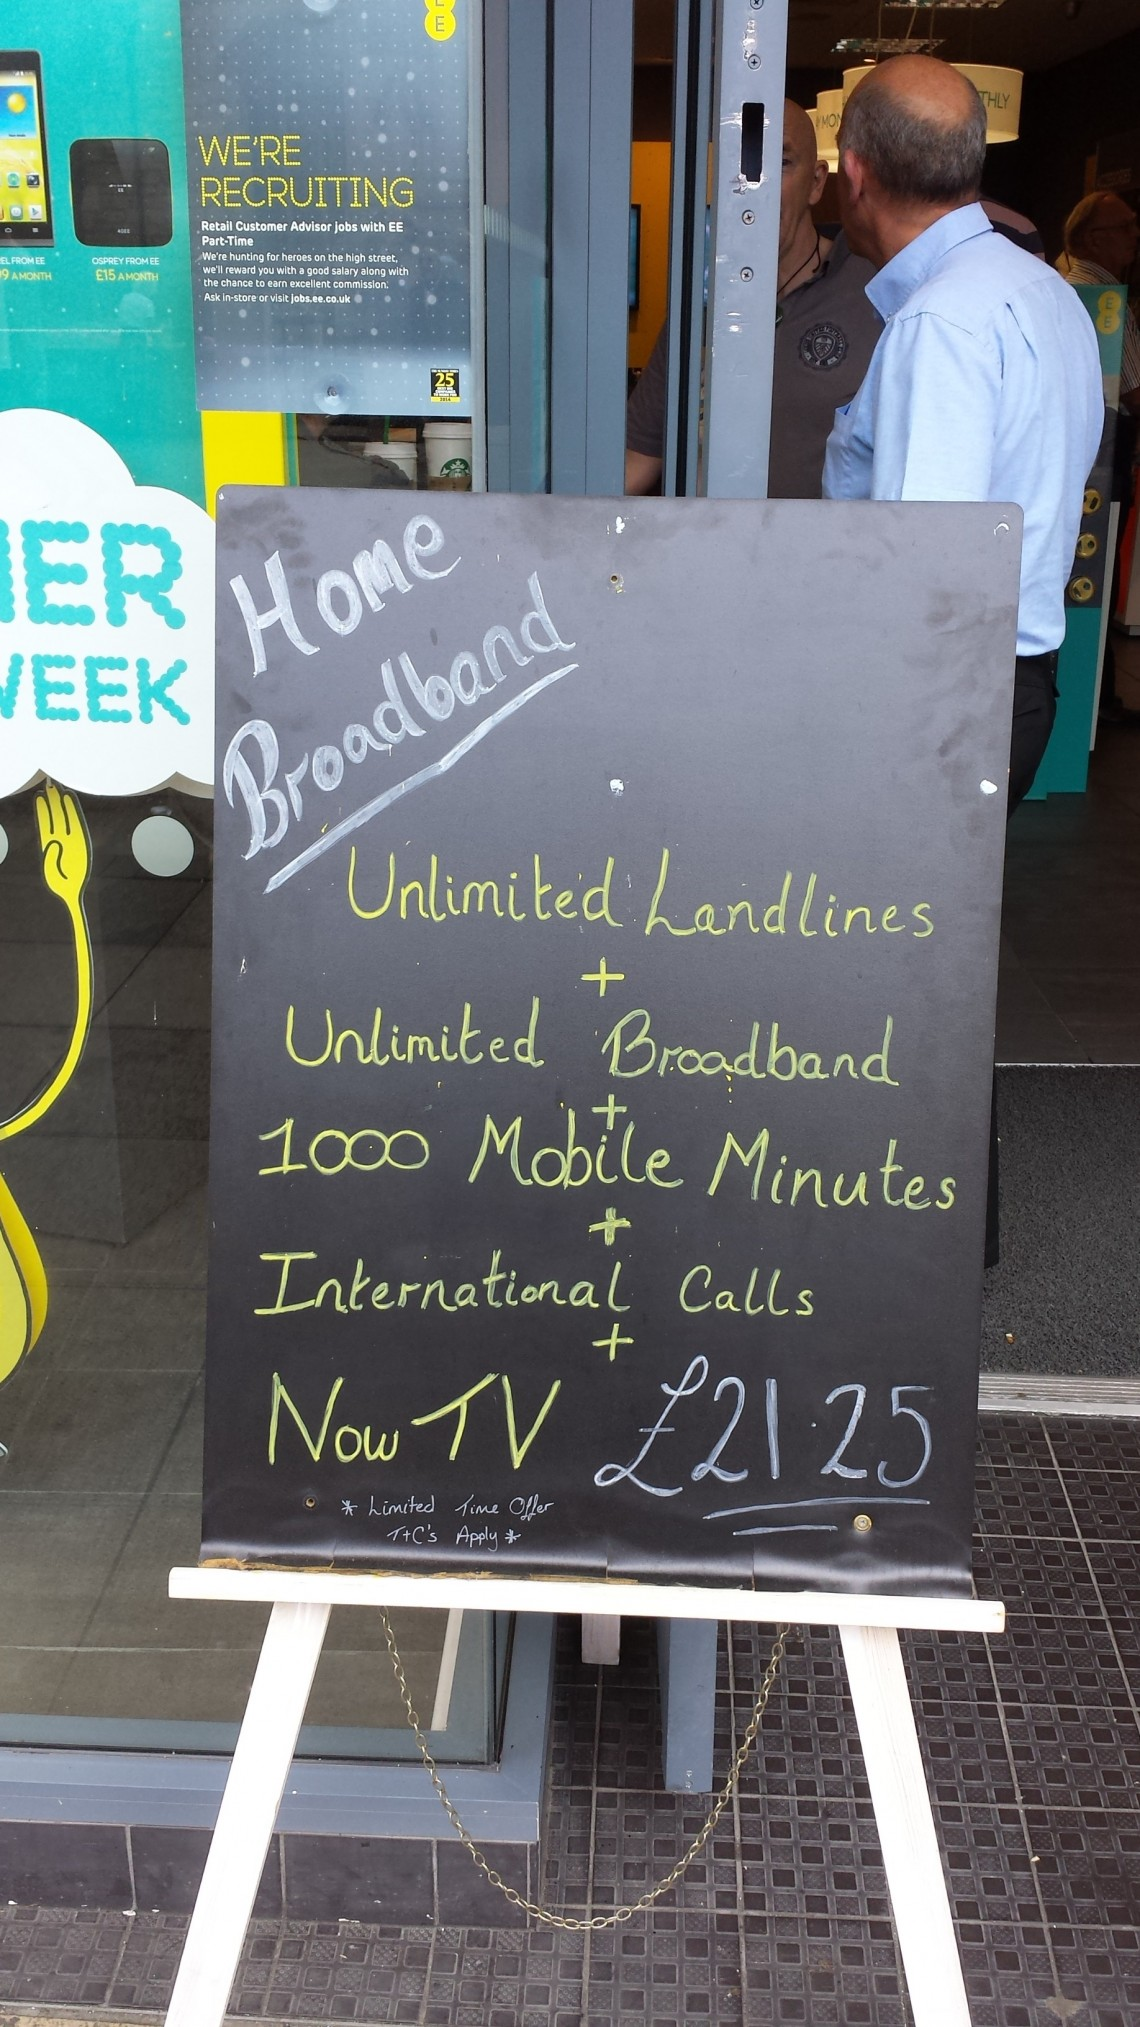 home broadband deals from EE